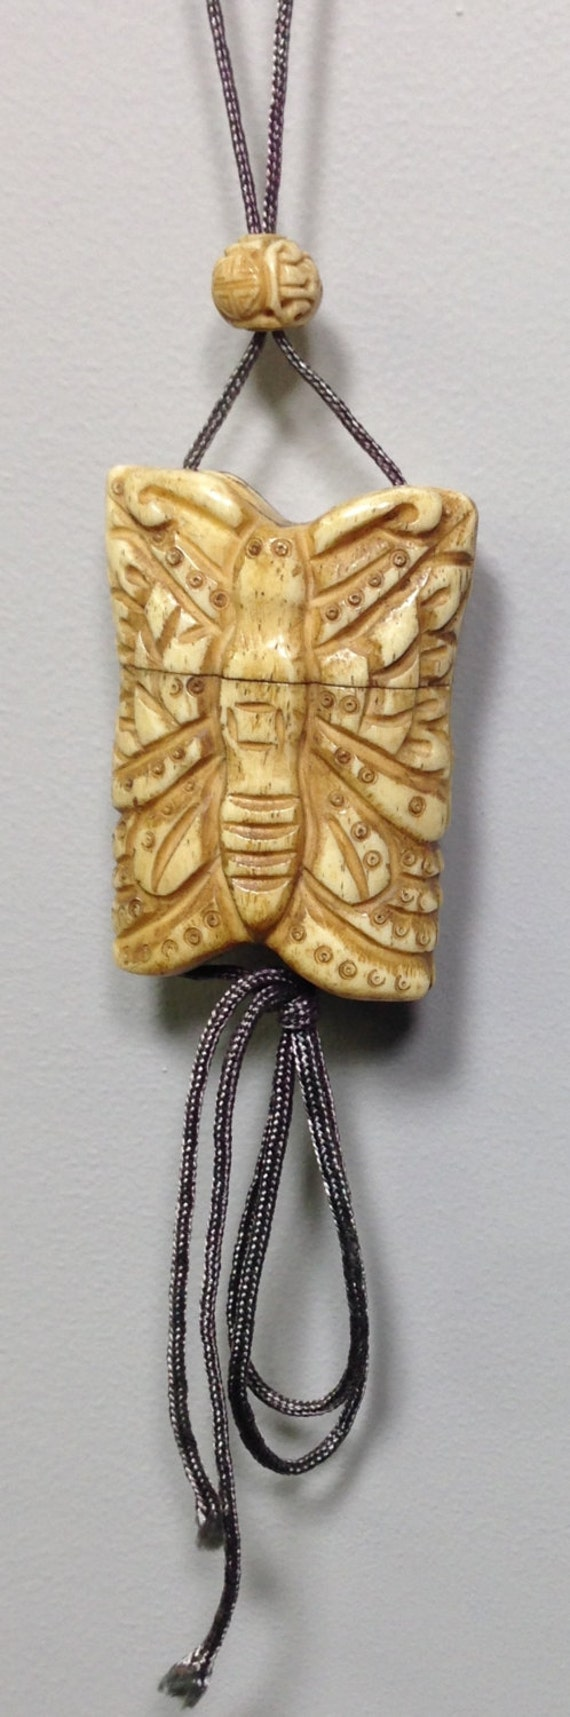 Cord Necklace Chinese Carved Bone Butterfly Box Handmade Handcrafted Unique Statement  Butterfly Box Jewelry Necklace